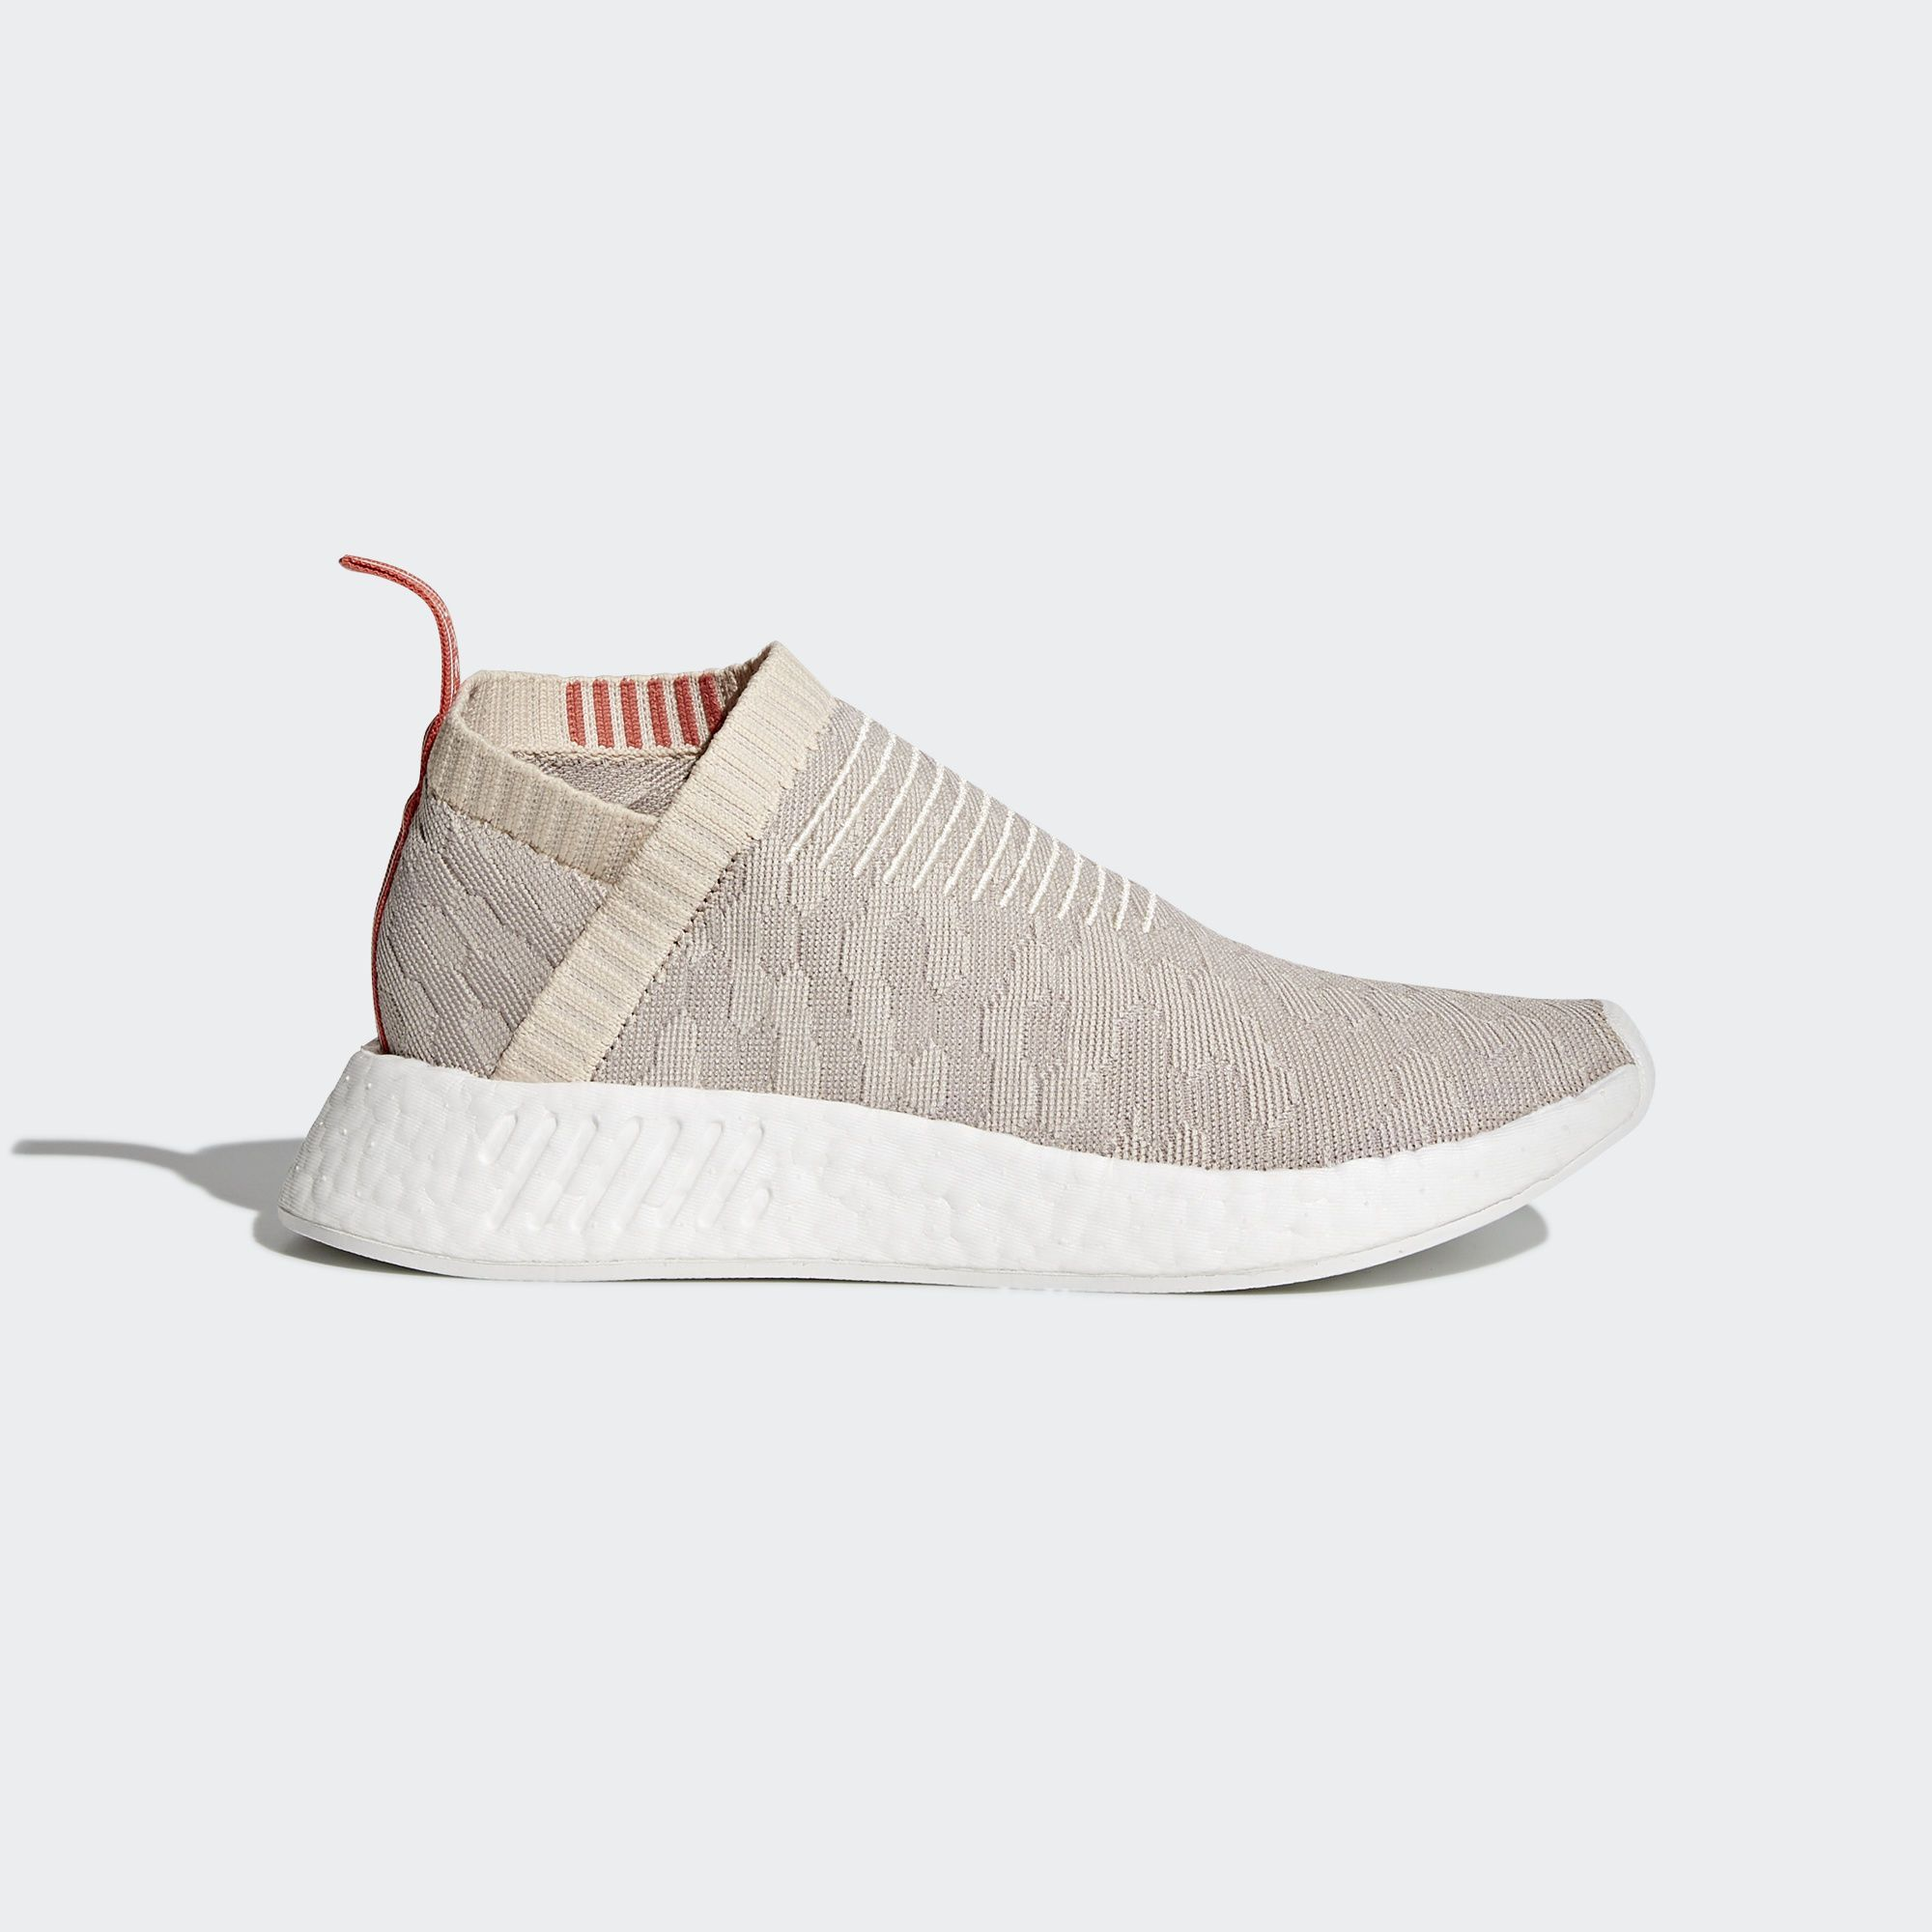 Shop the NMD CS2 Primeknit Shoes - Beige at adidas.com us! See all ... 5058989cb